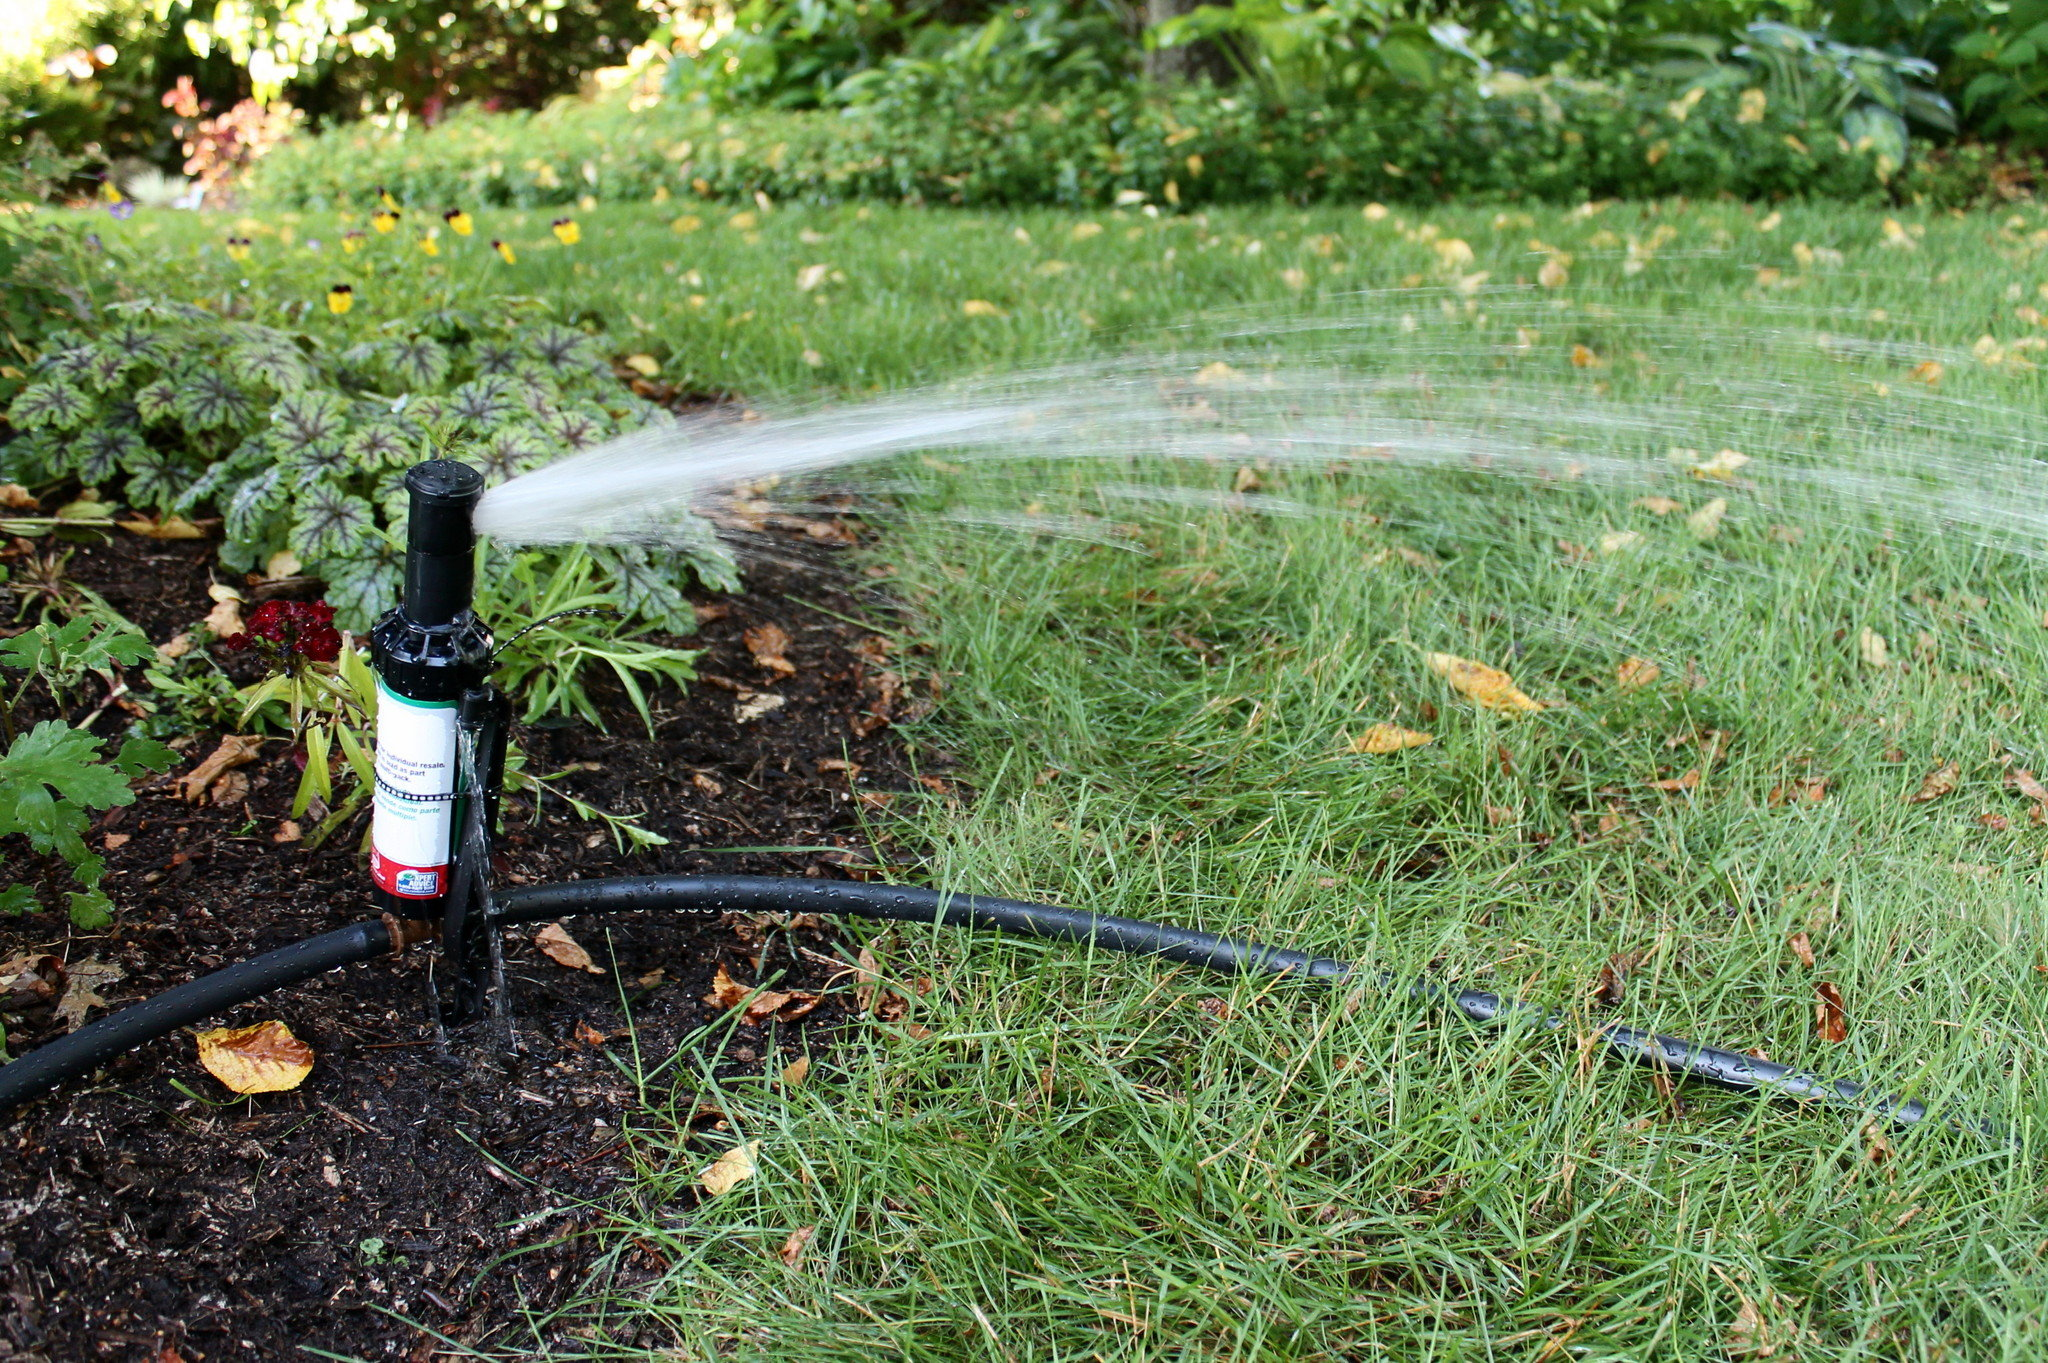 23 Diy Sprinkler Systems Water Your Lawn With Ease The Self